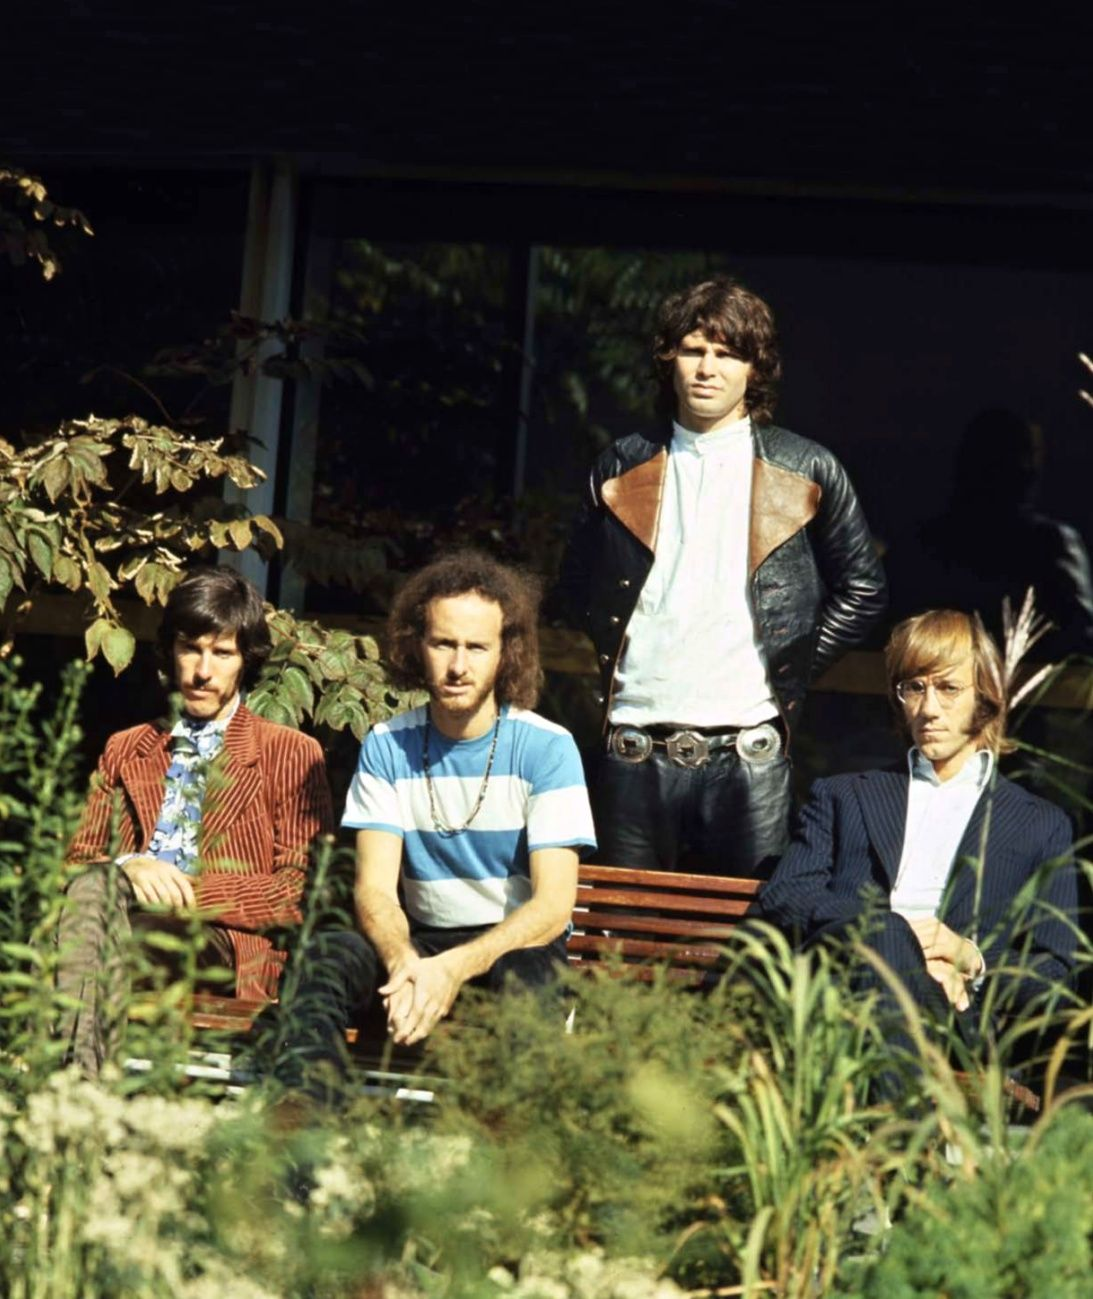 psychedelicway \u201c The Doors (in Germany September 1968). Left to right  sc 1 st  Pinterest & psychedelicway: \u201c The Doors (in Germany September 1968). Left to ...